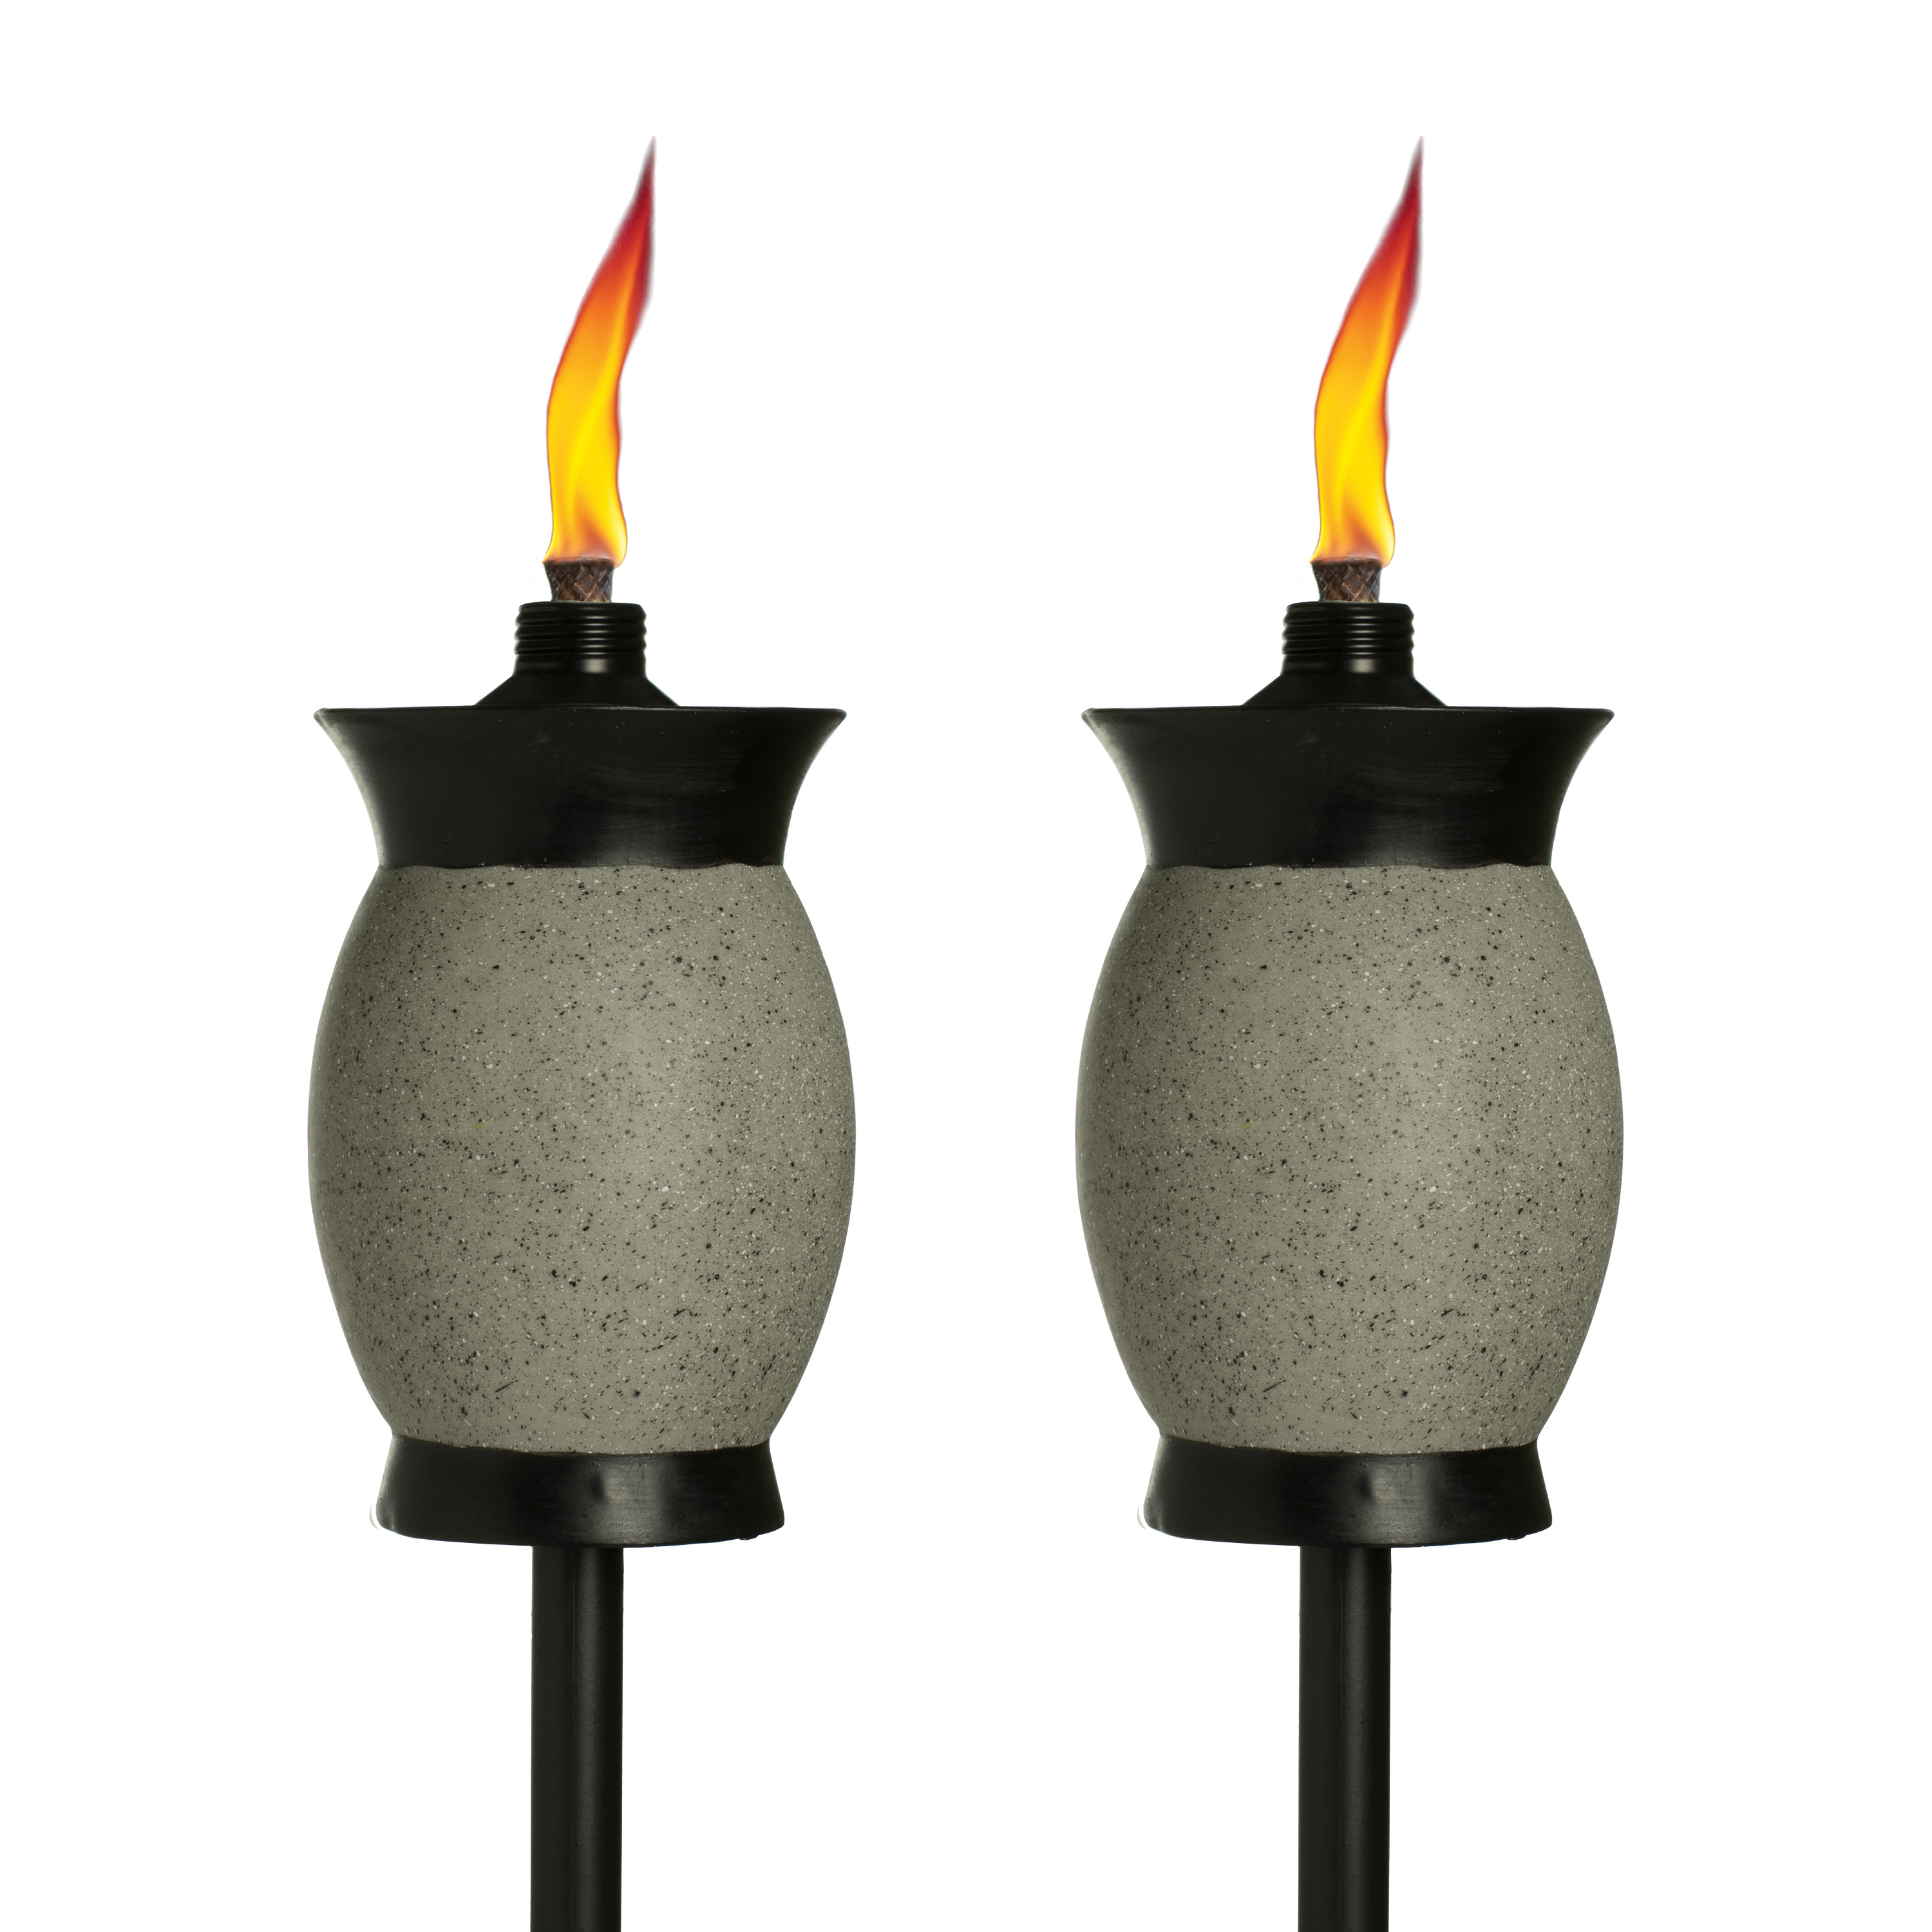 TIKI® Brand 64-inch Resin Jar Torch 4-in-1 Gray Color - 2 pack